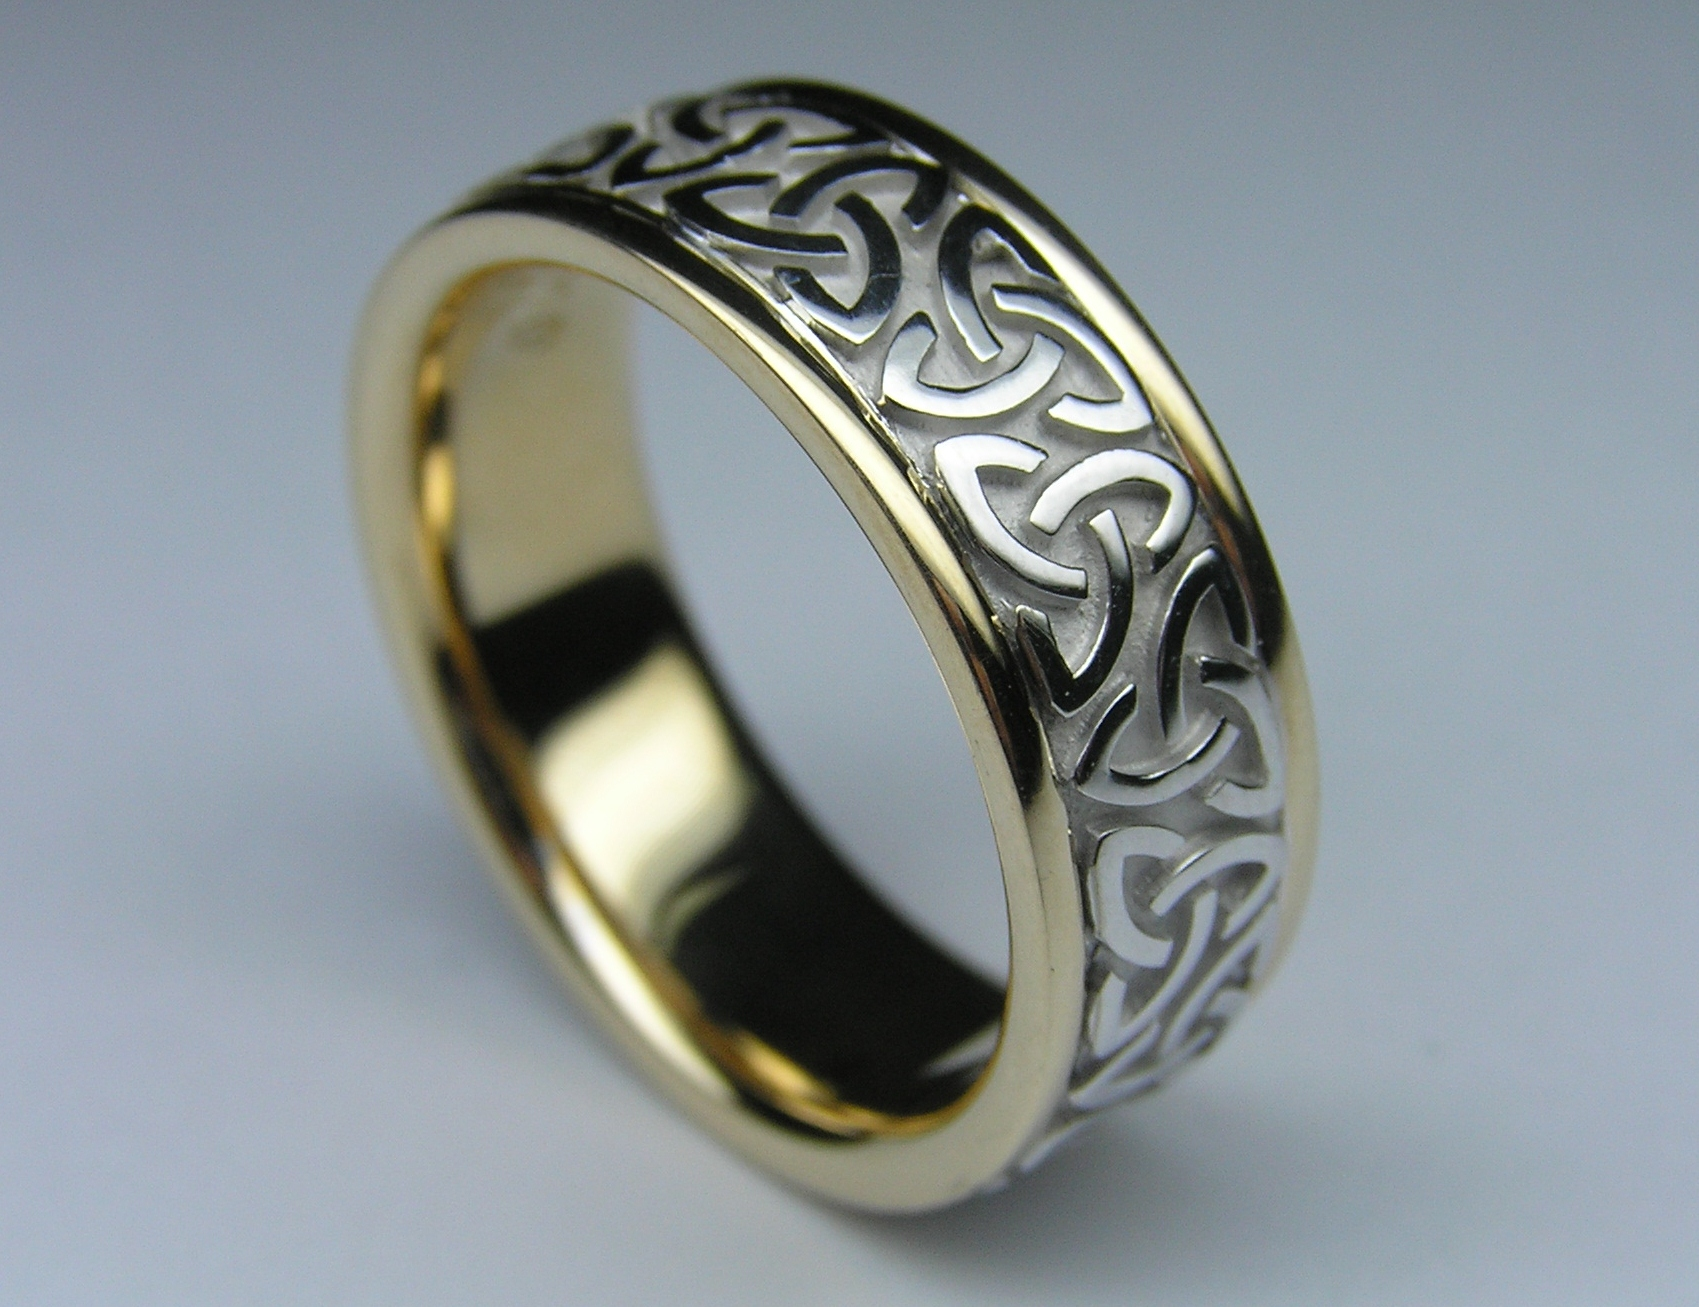 ring rings celtic silver minconi in patricio knot sterling anillos product wedding set compromiso